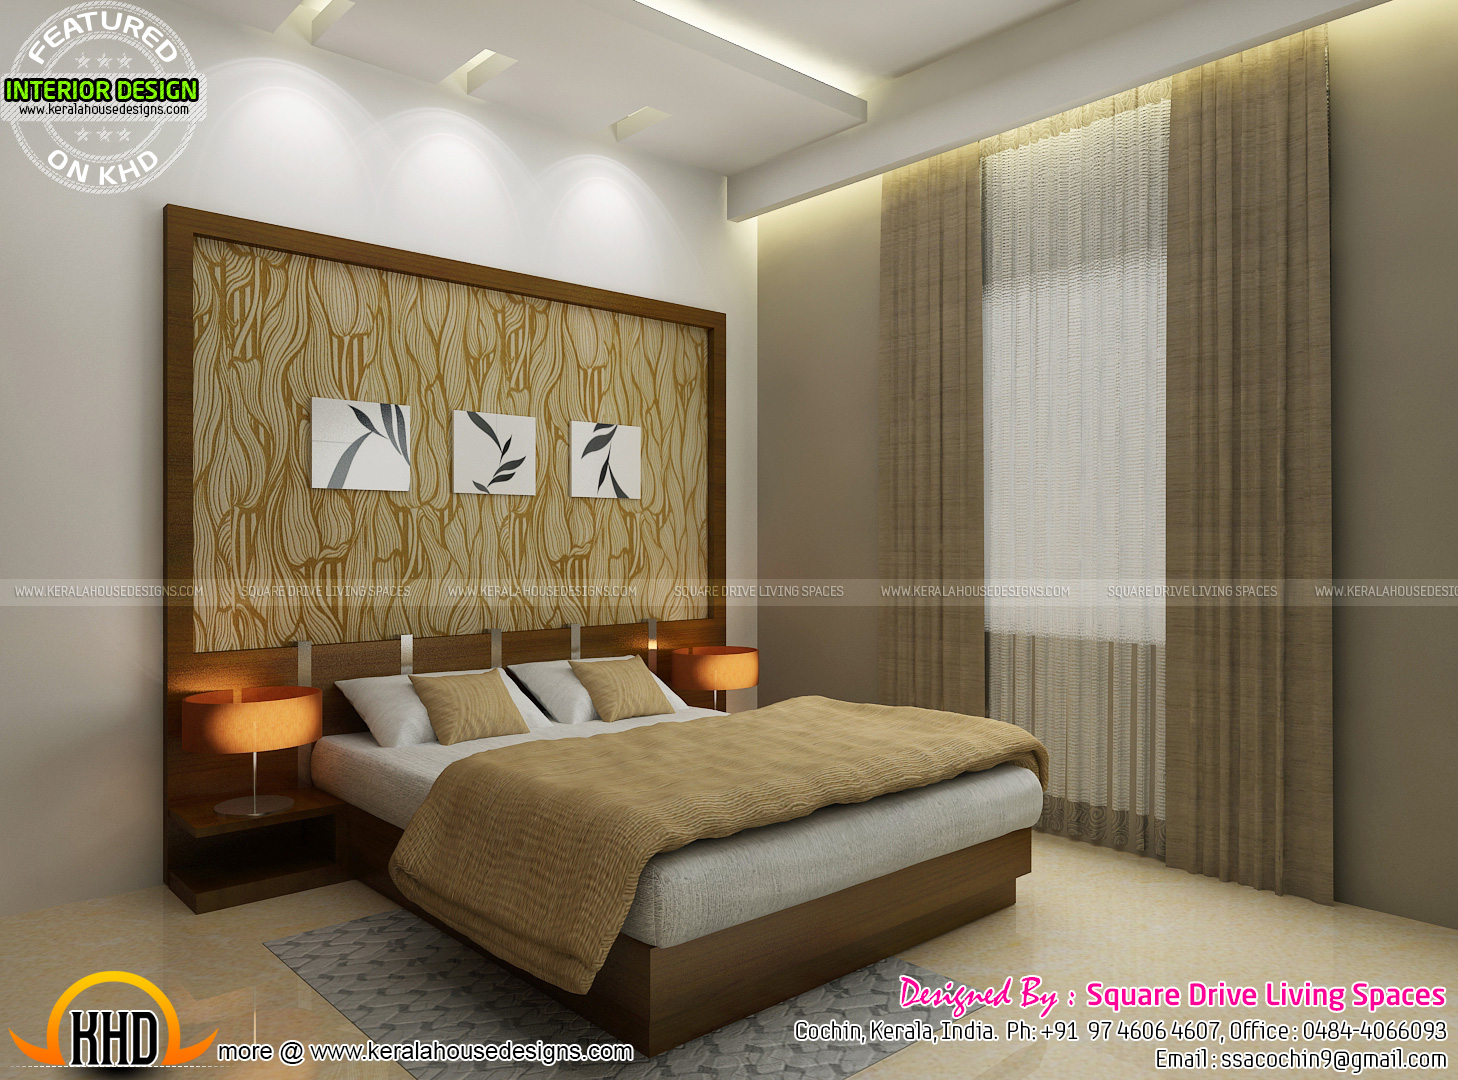 Interior designs of master bedroom living kitchen and for Interior design images bedroom